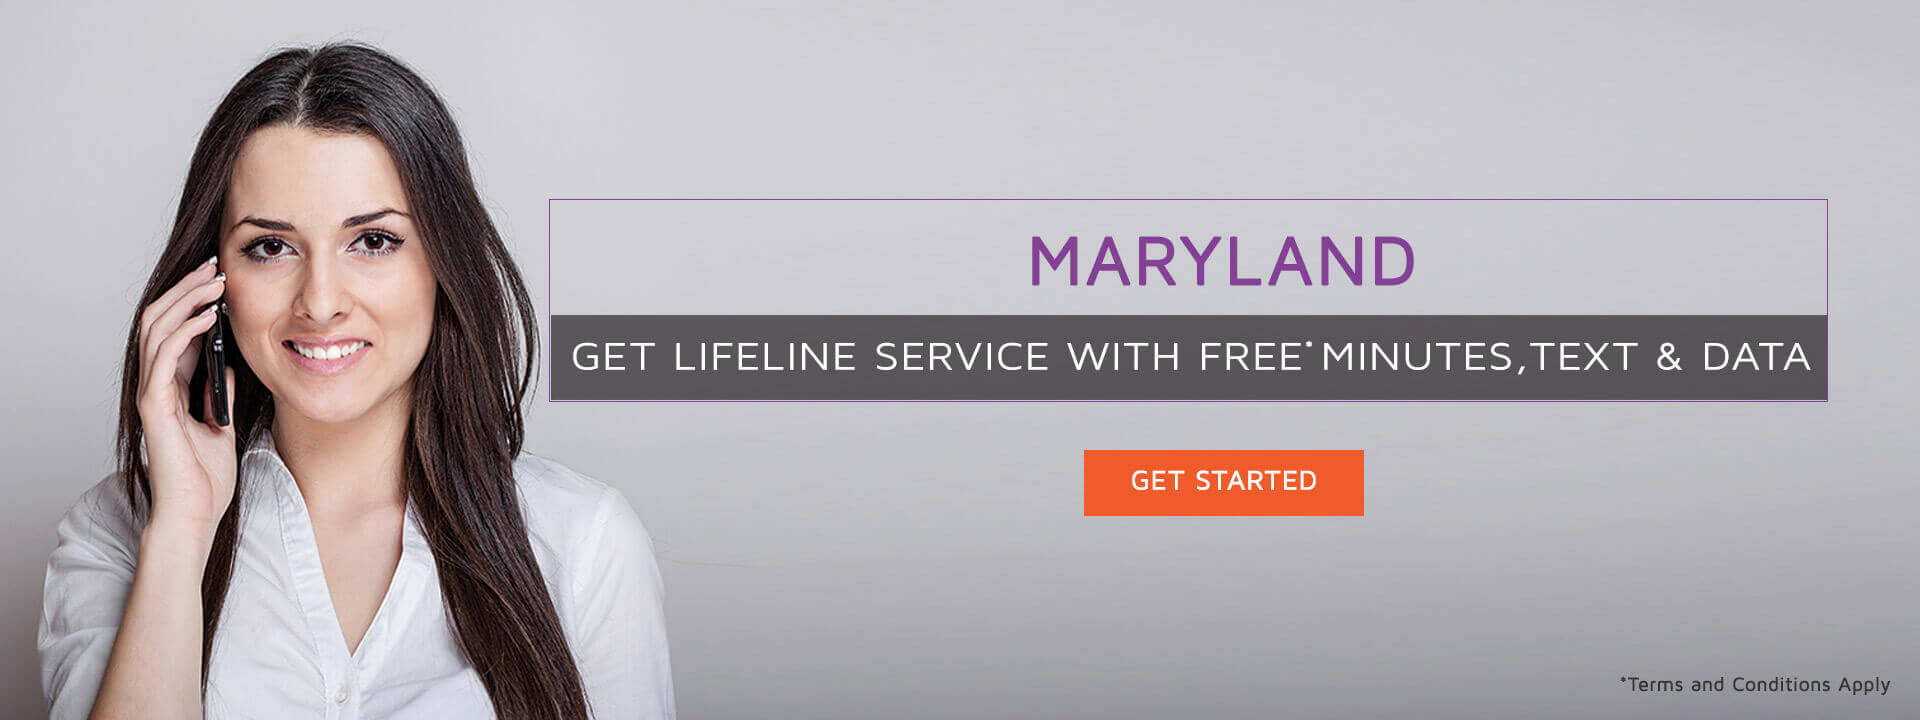 Maryland Lifeline Service